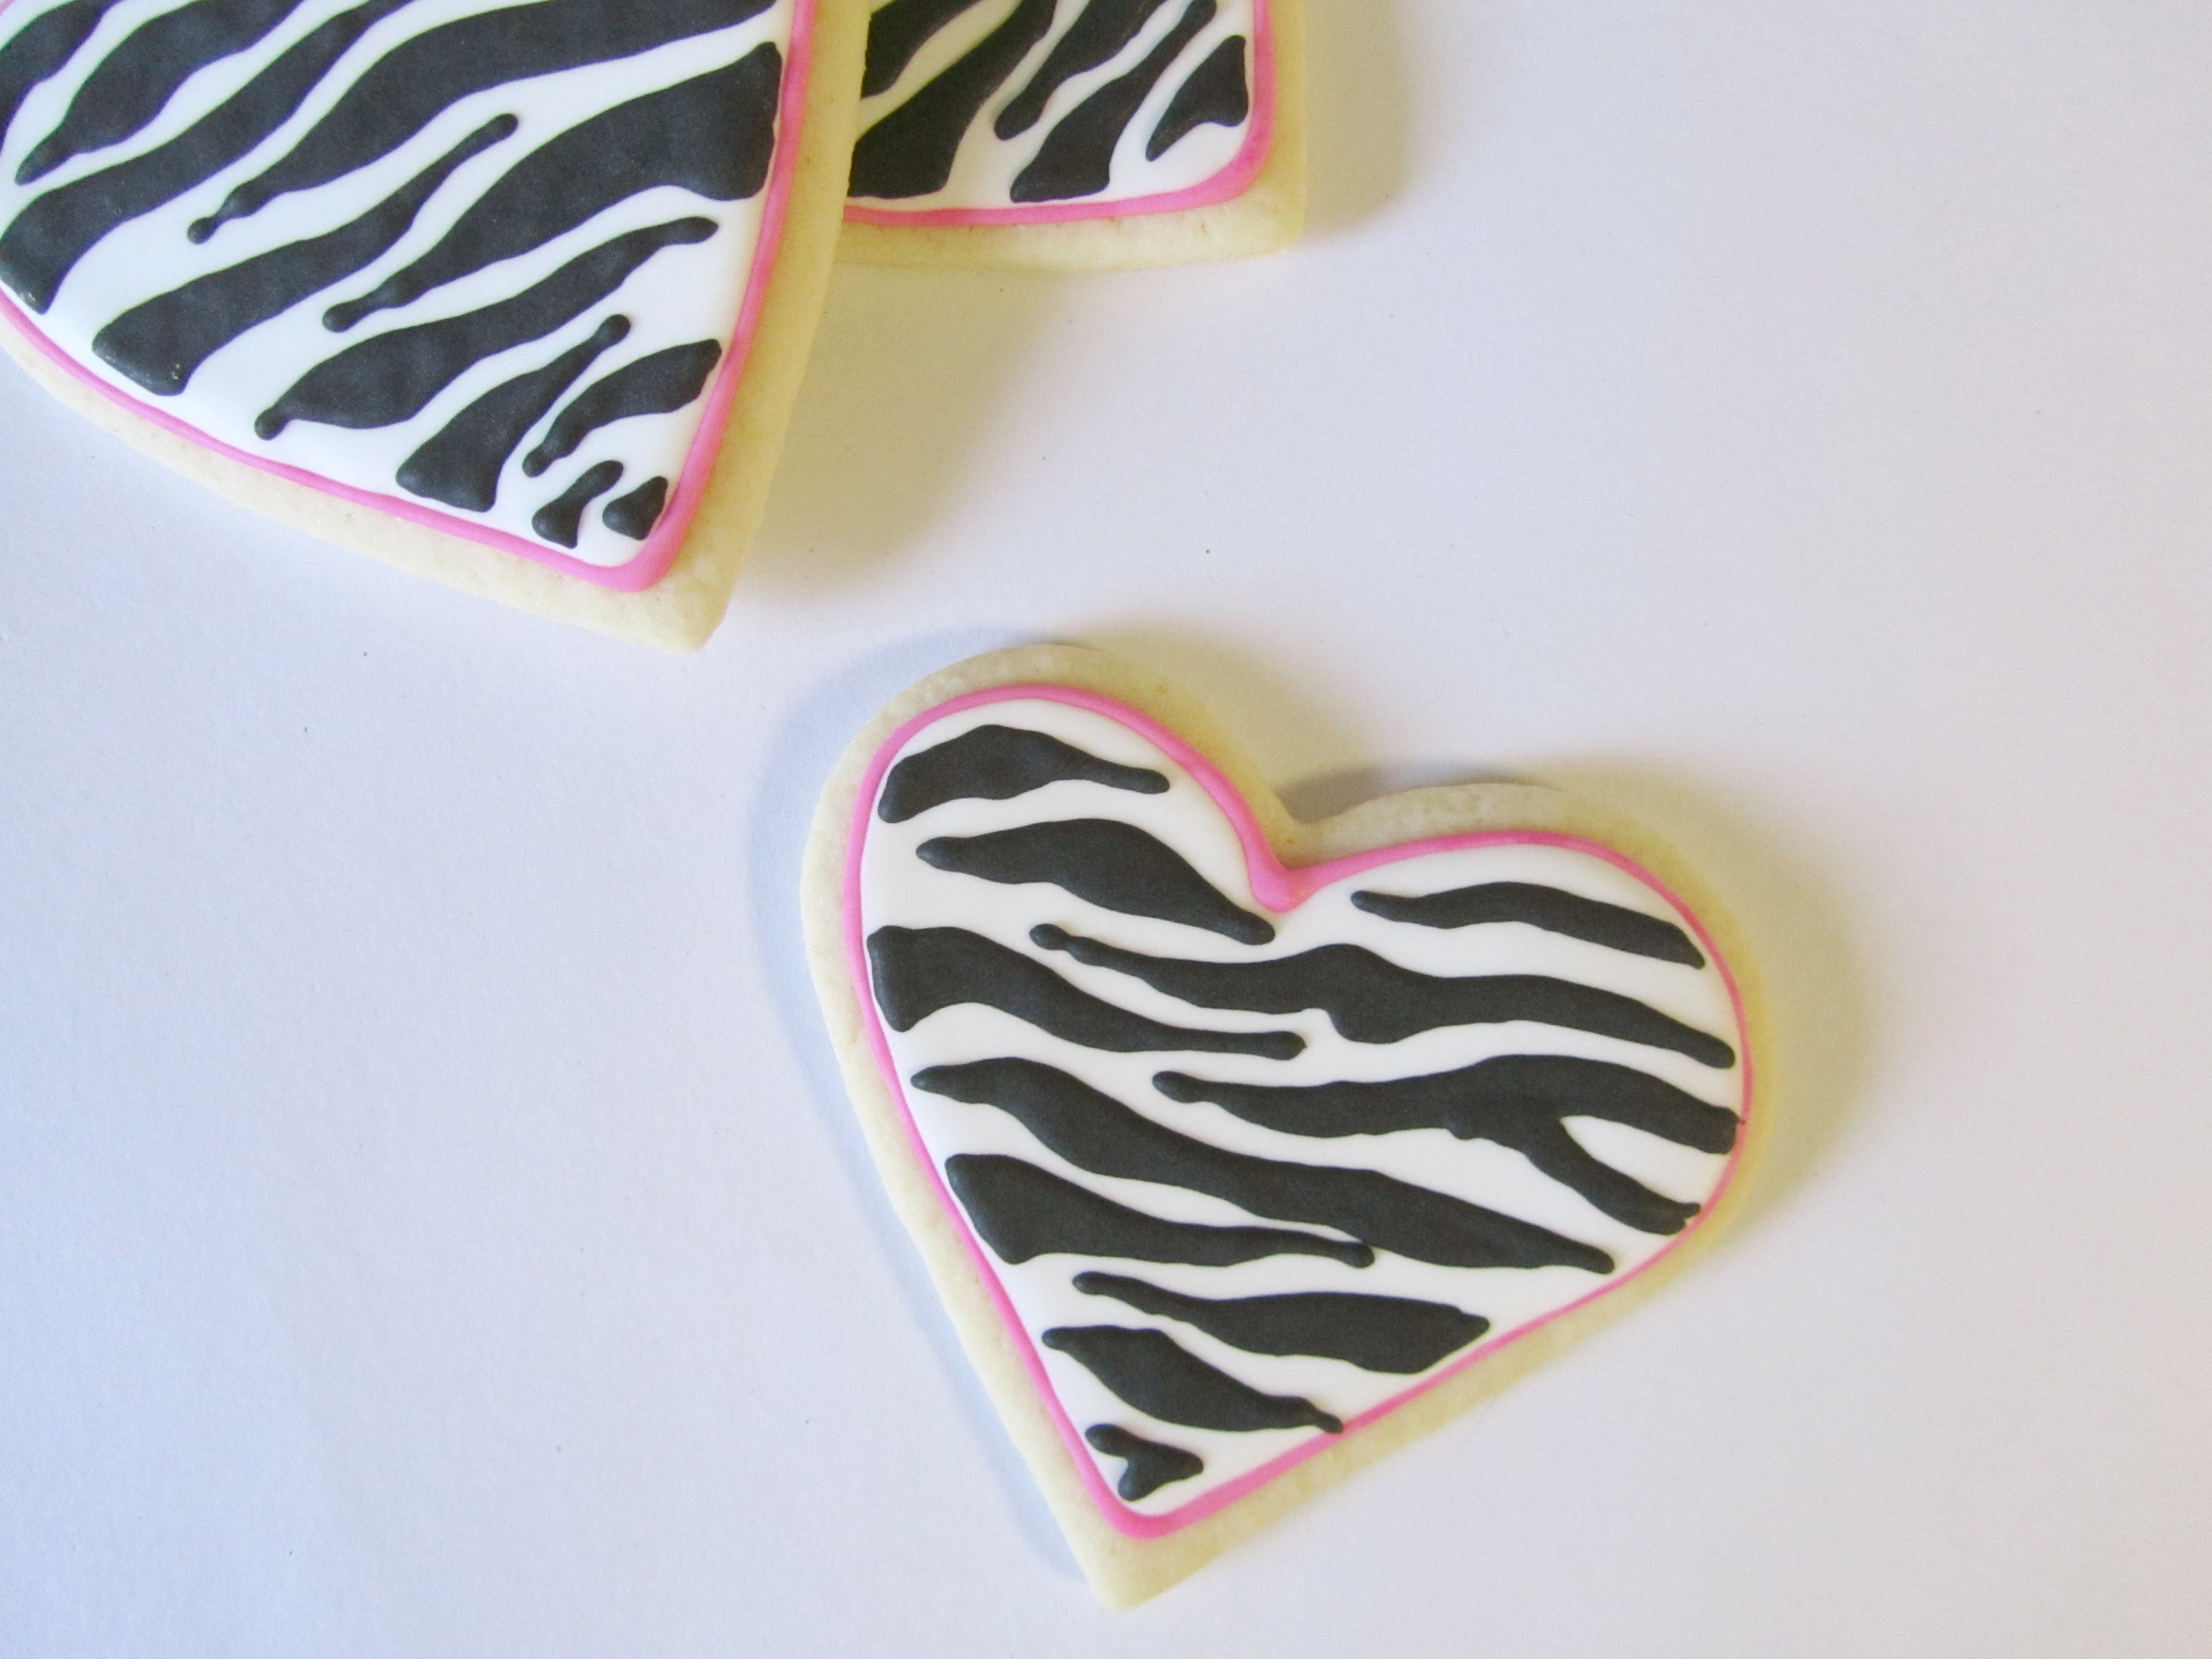 Discussion on this topic: How to Make Zebra Stripe Cookies, how-to-make-zebra-stripe-cookies/